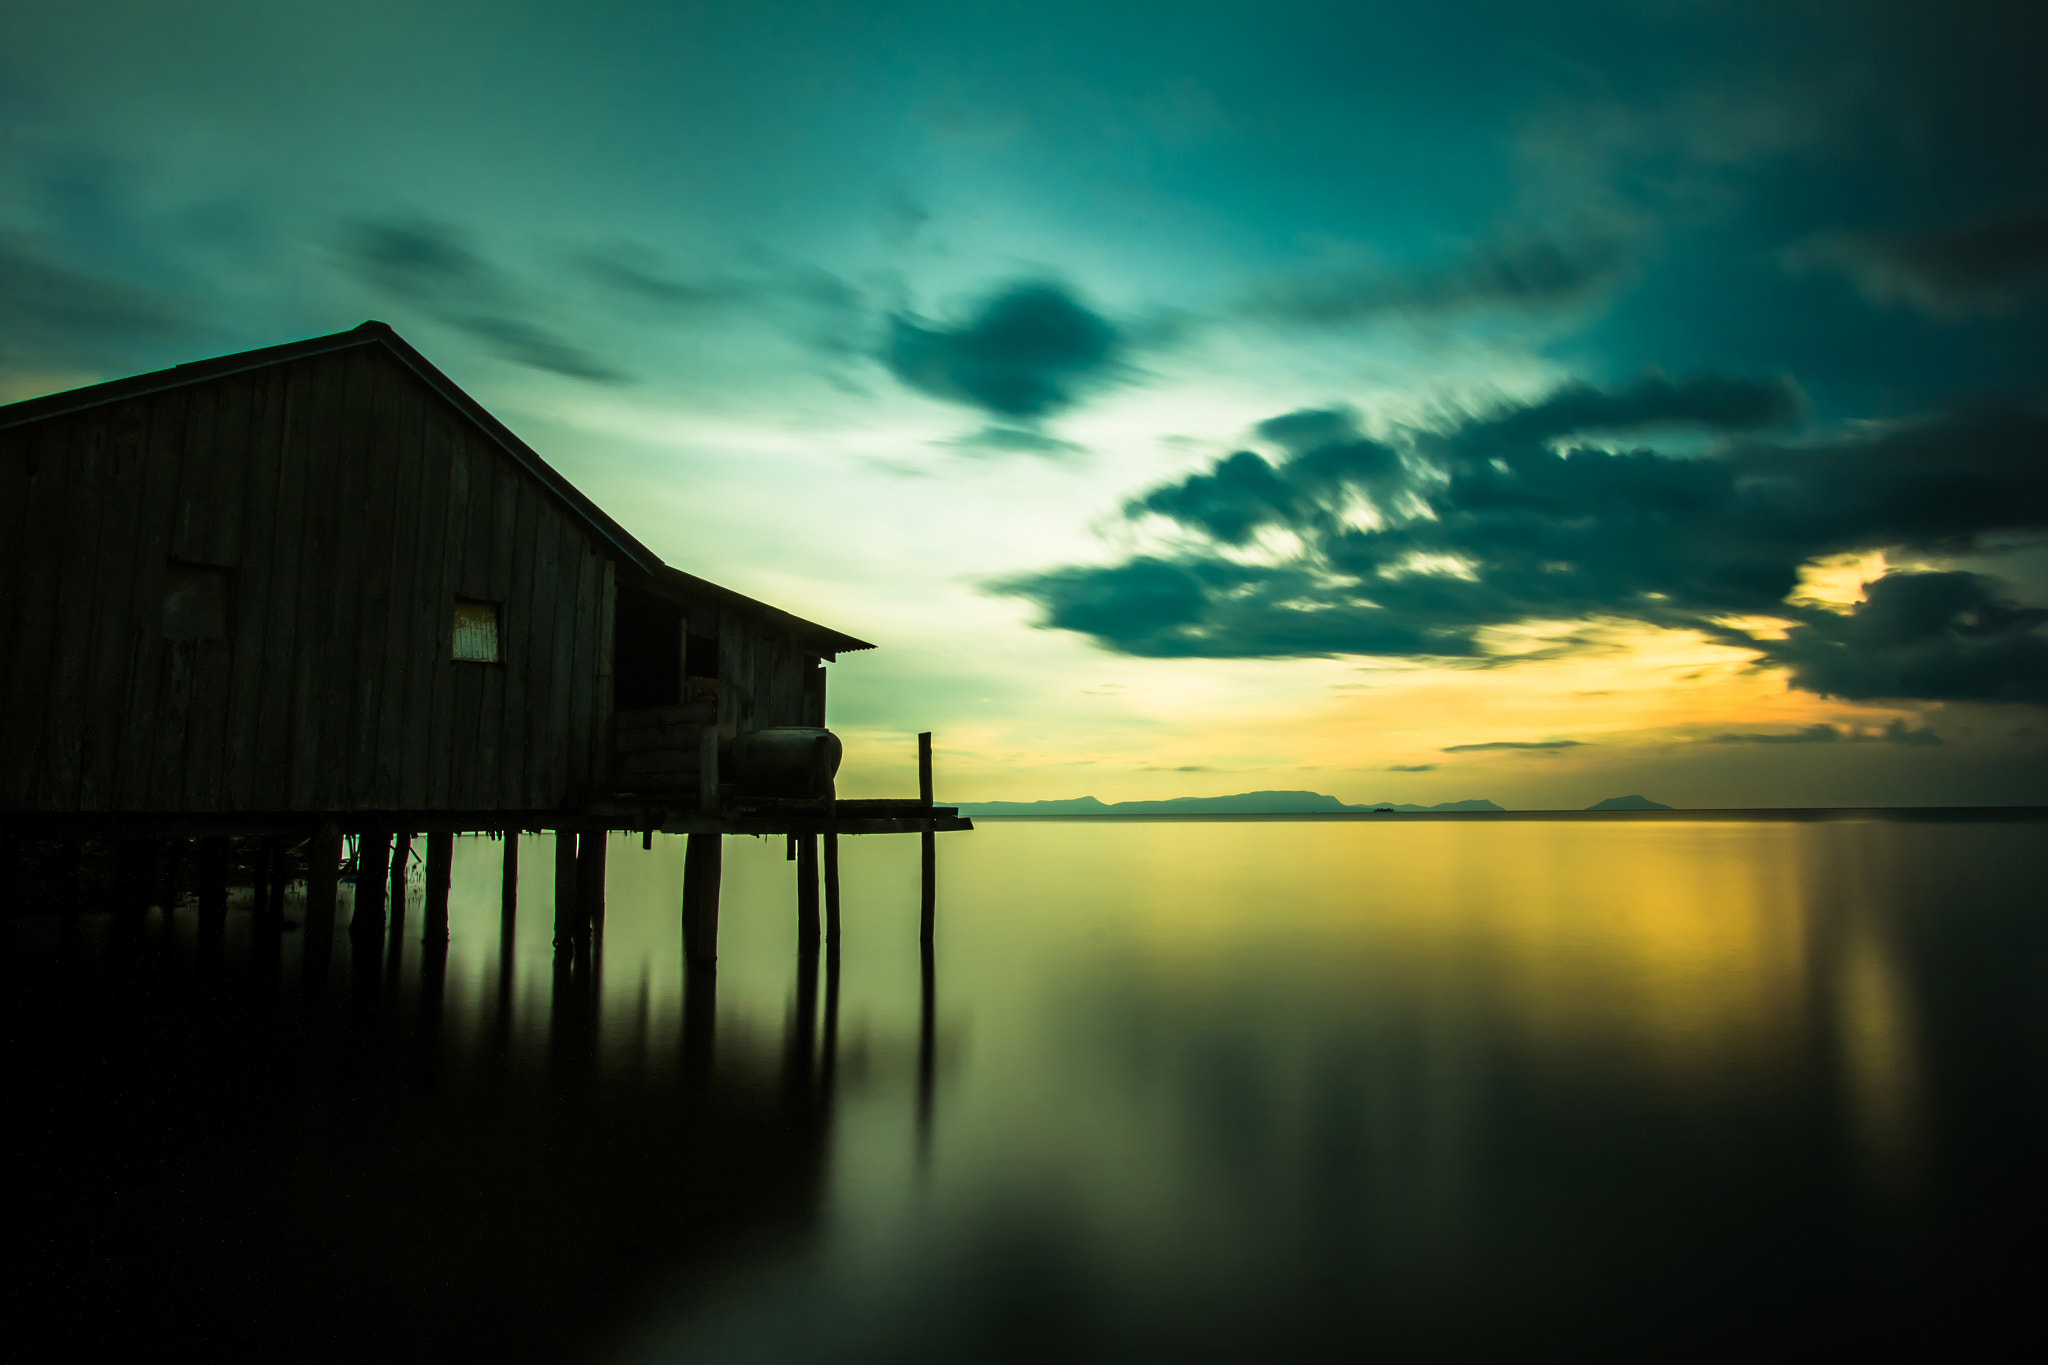 Photograph Sanctum At Sunset by Monssieur Roth Foto on 500px